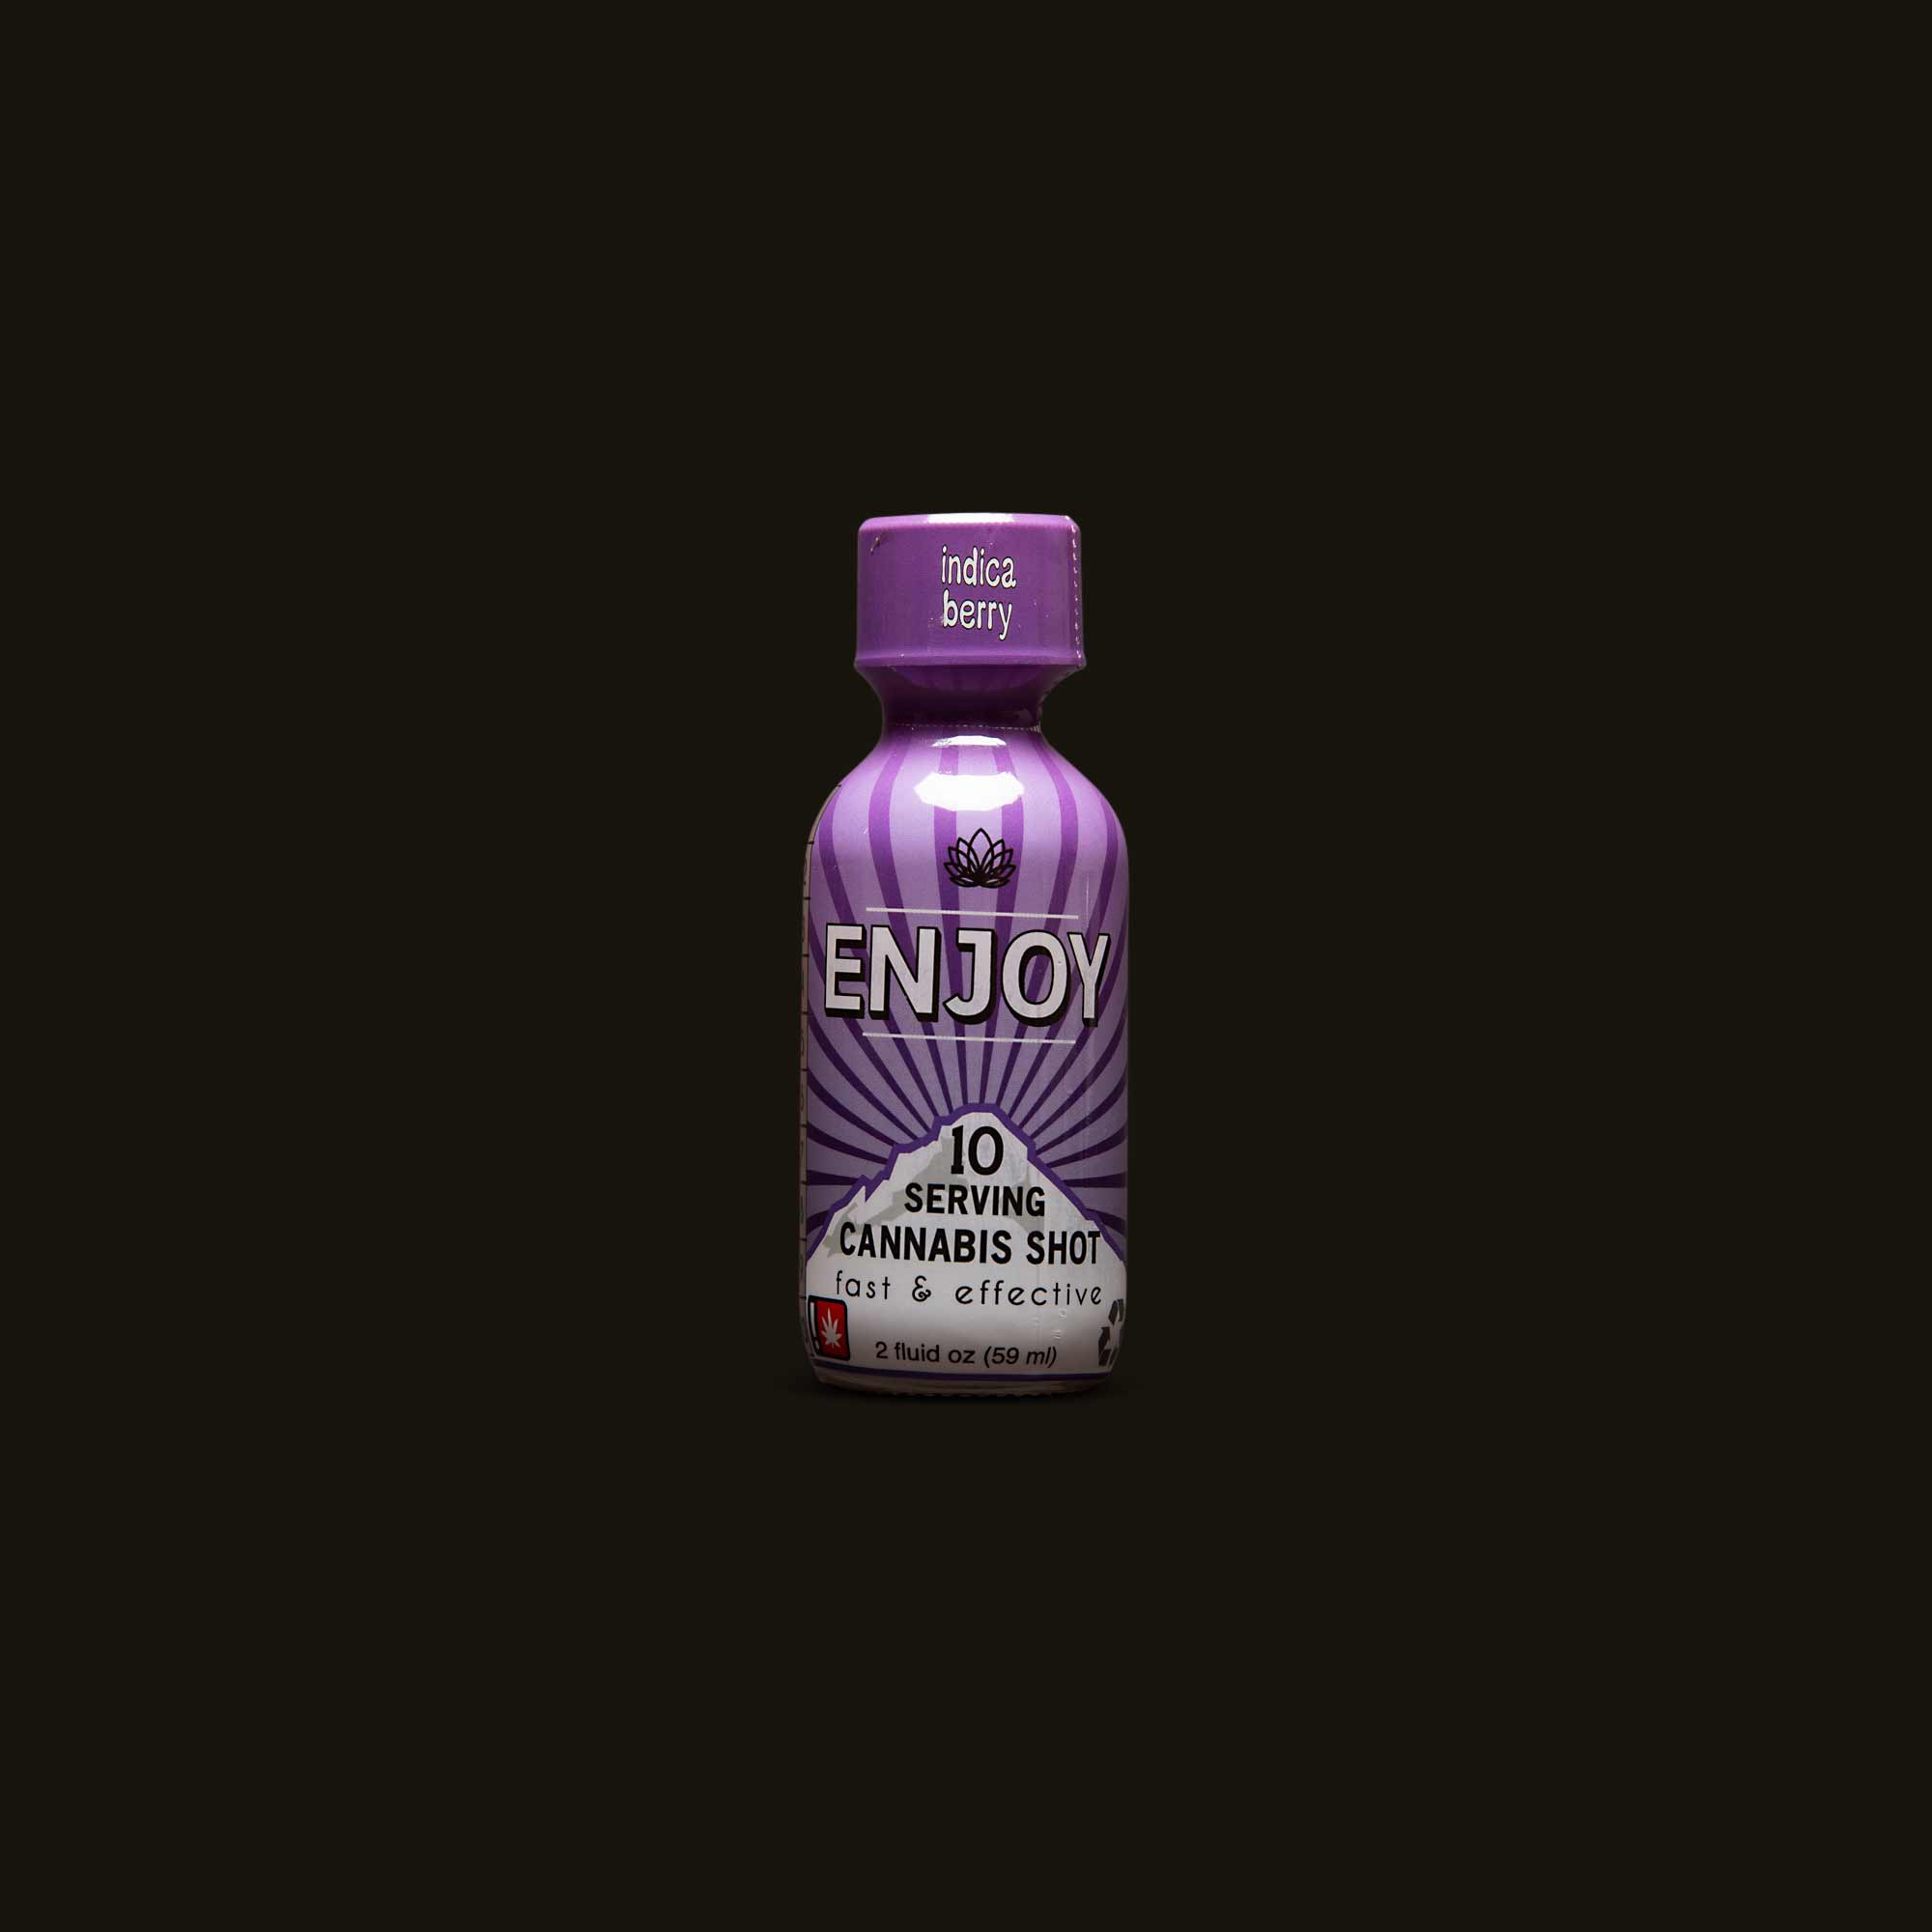 Enjoy Indica Berry Shot